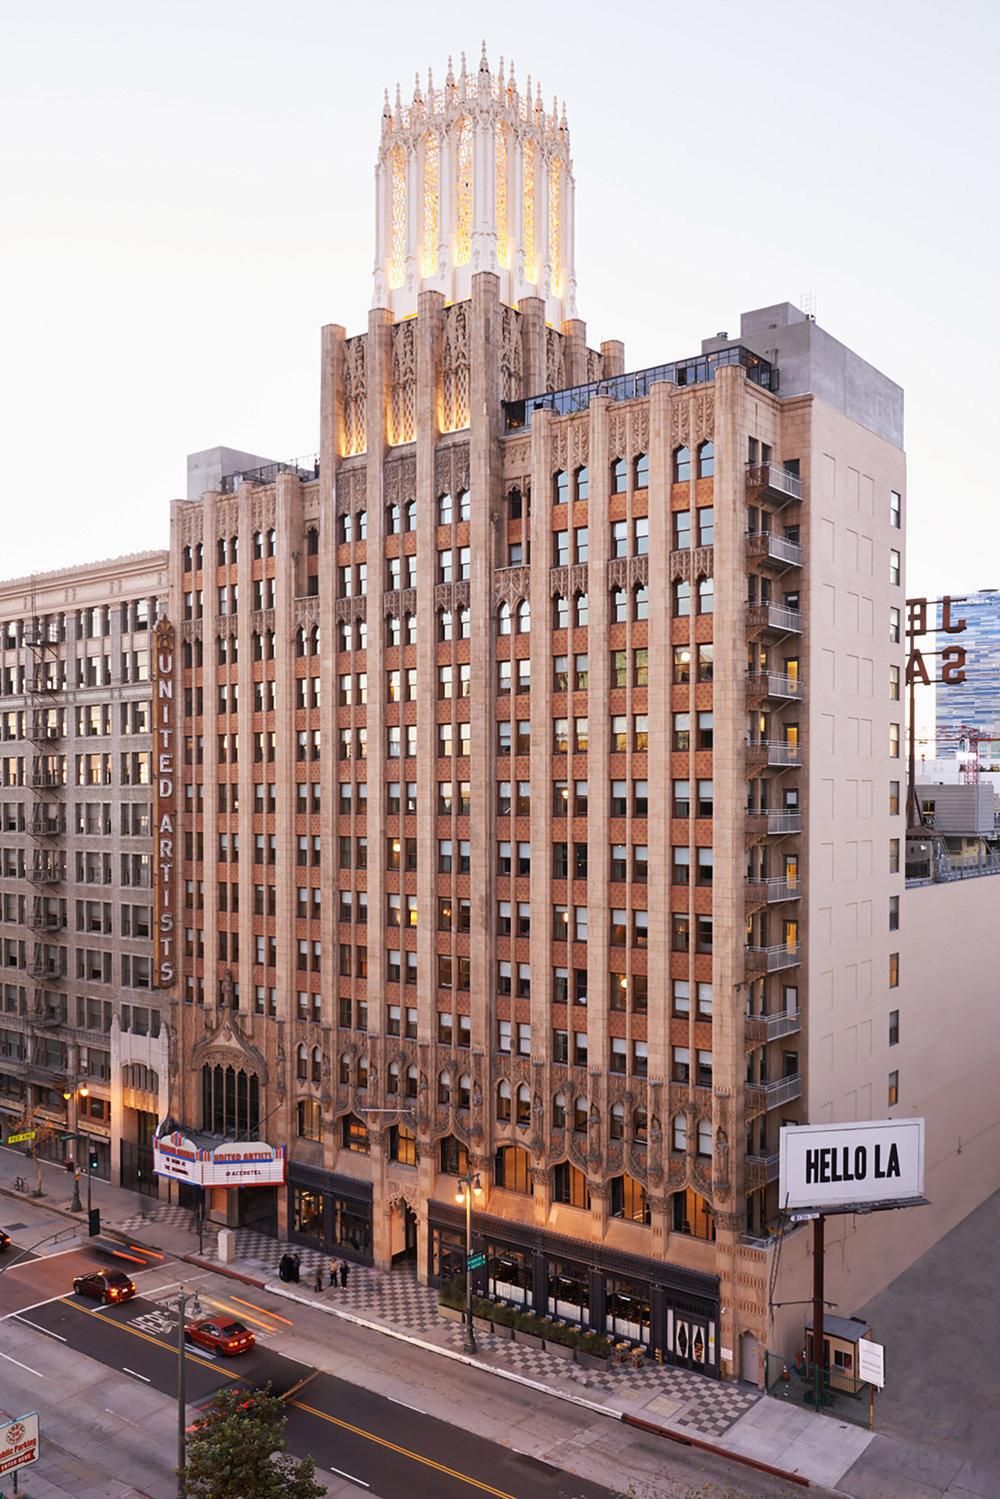 Ace Hotel, Los Angeles, California, 2014